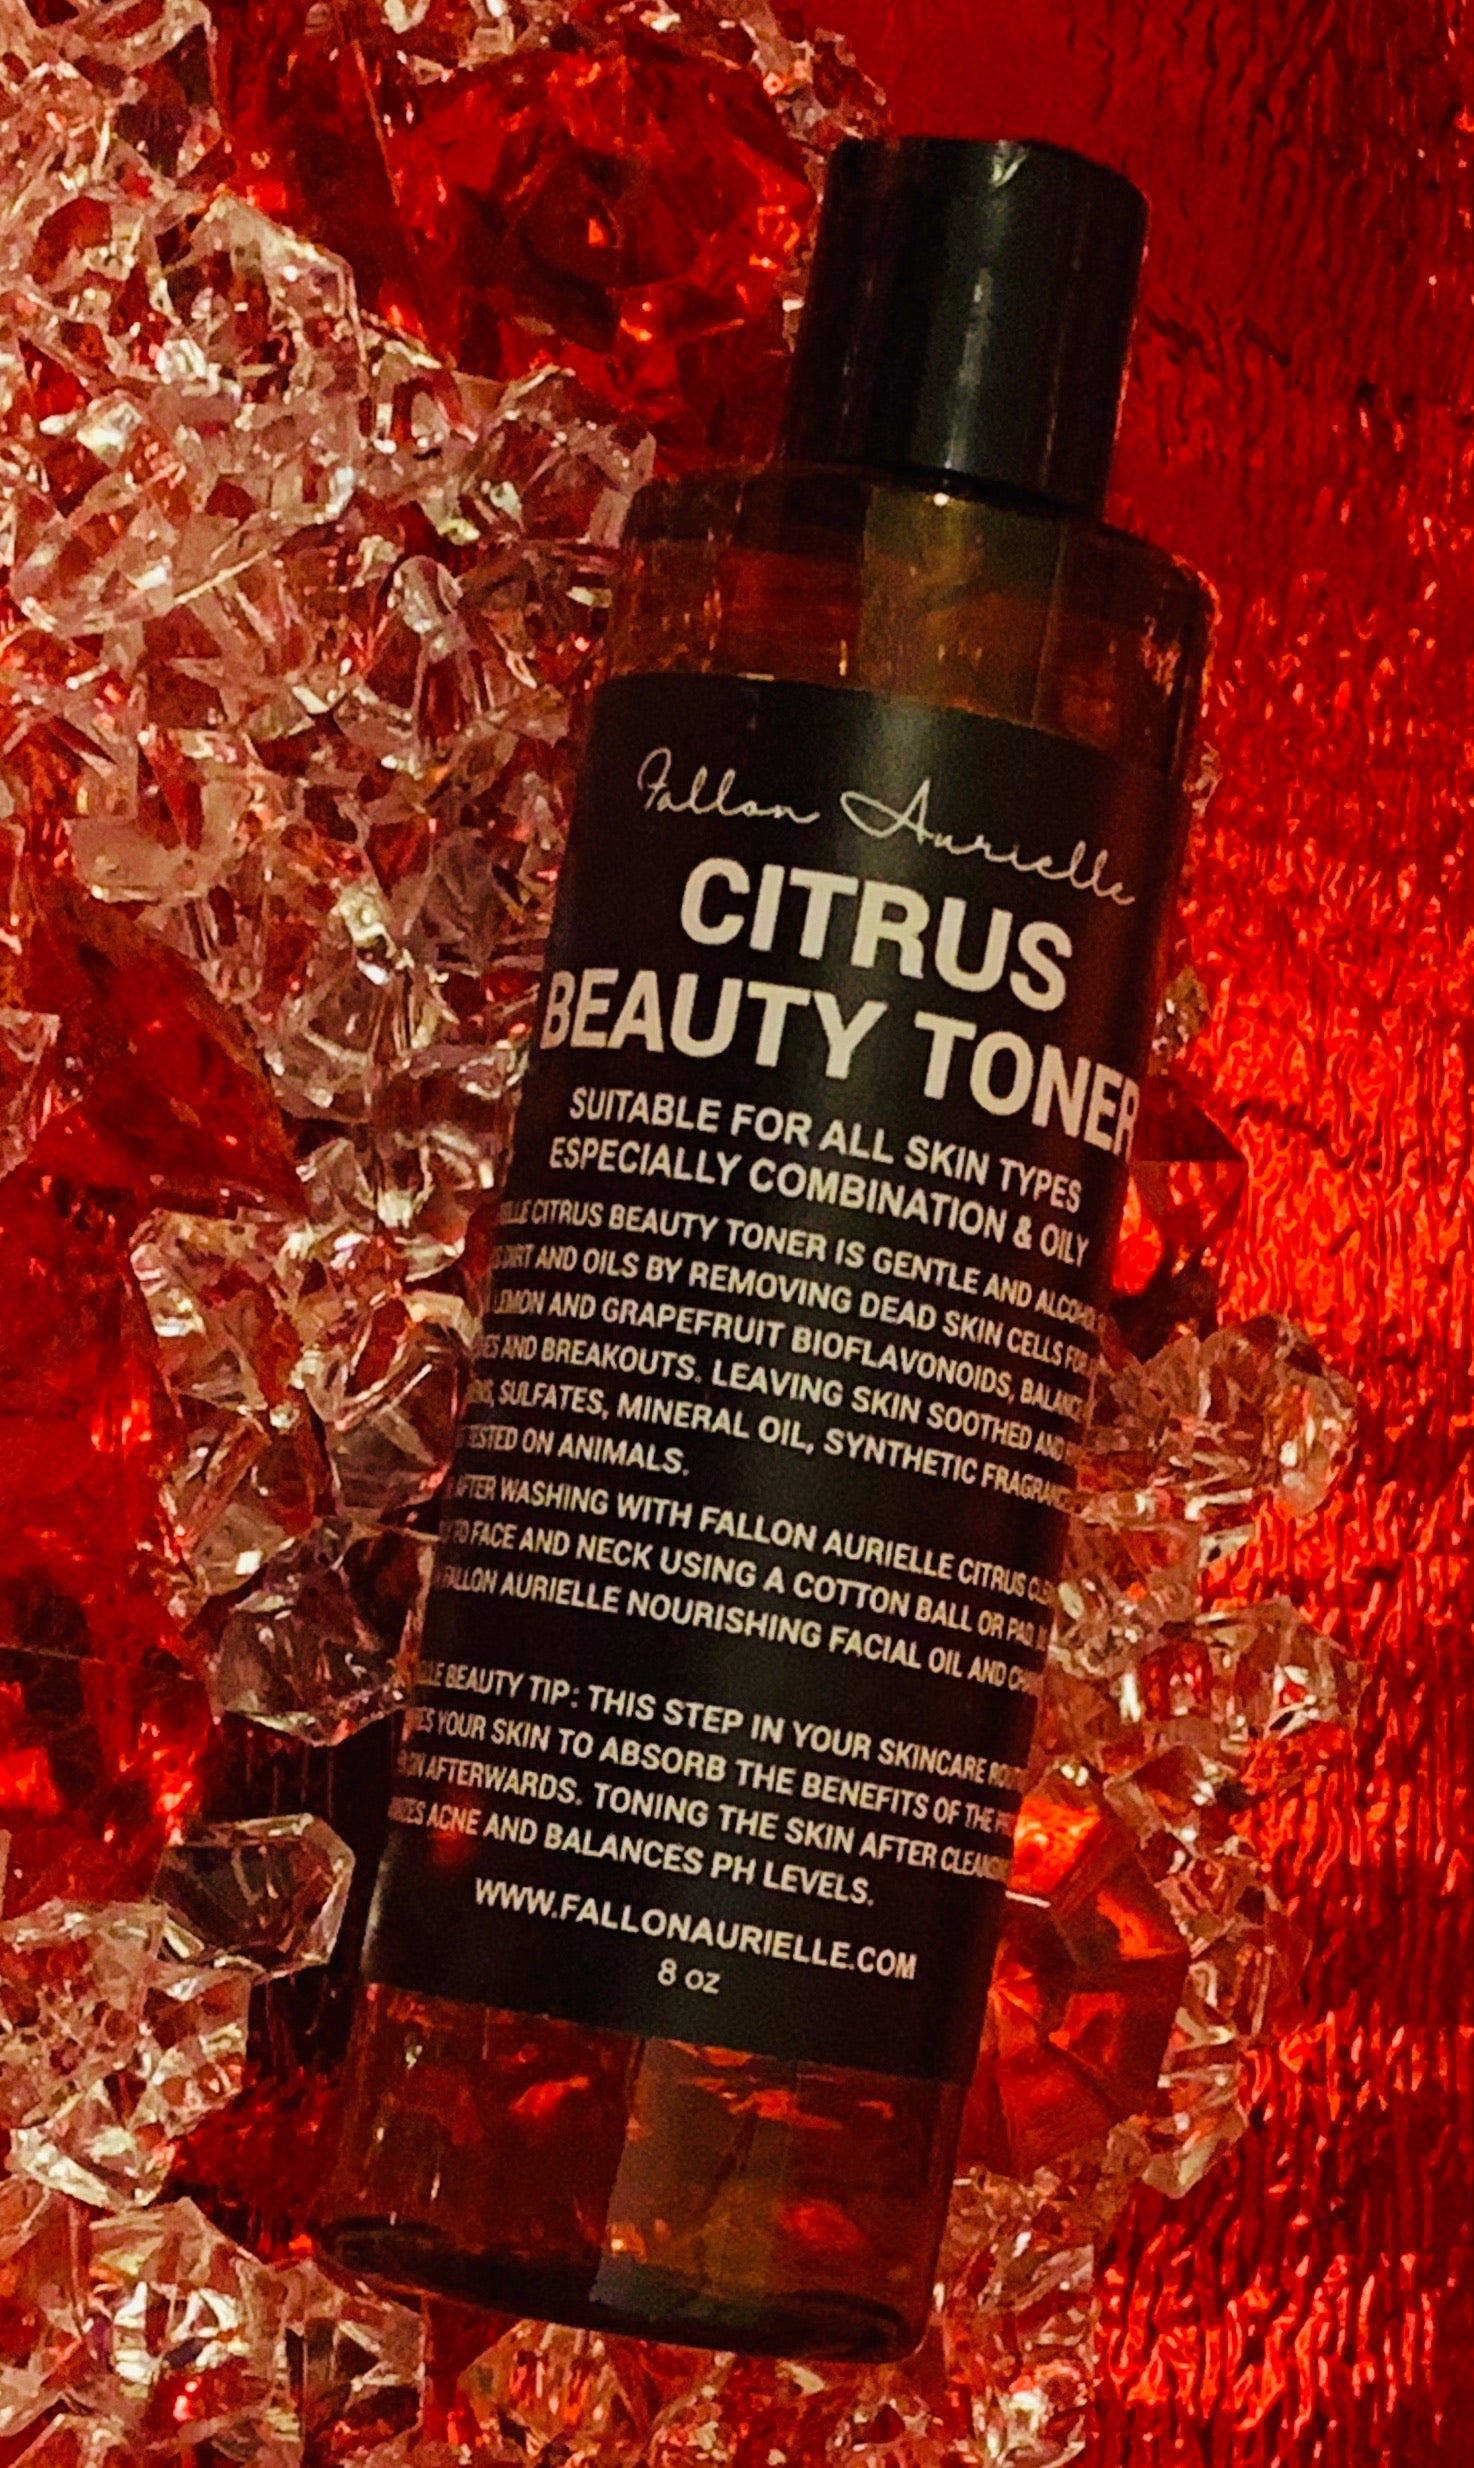 Fallon Aurielle Citrus Beauty Toner Skincare Bottle